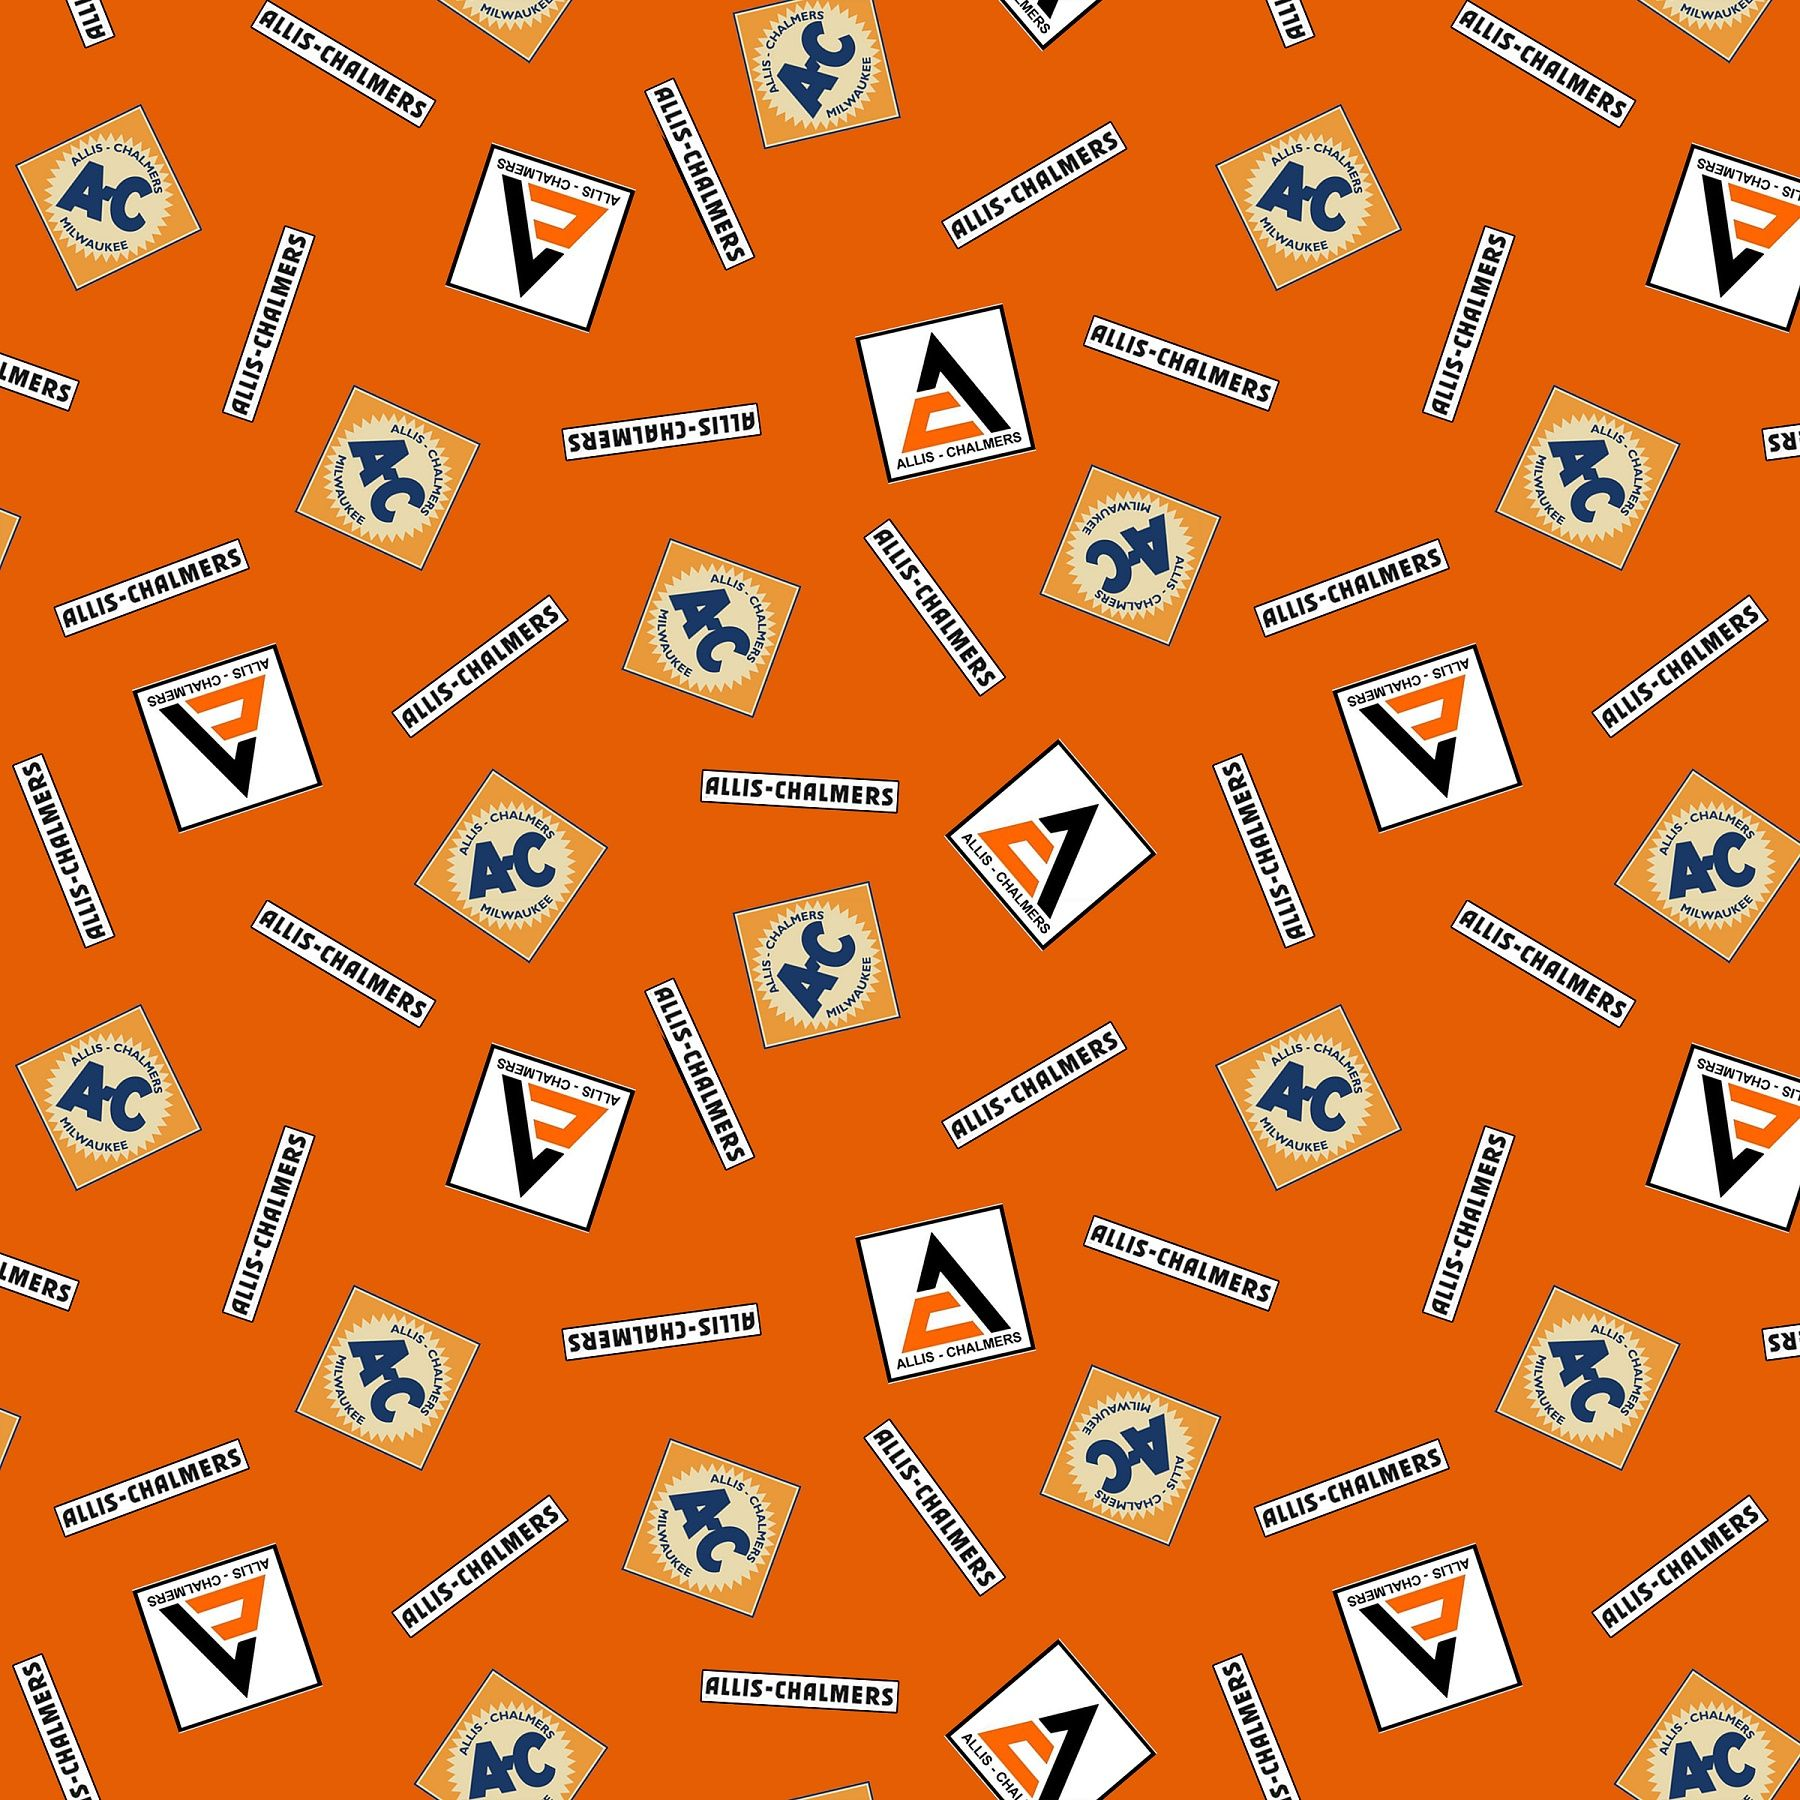 Big News Allis Chalmers Fabric is Available! Allis